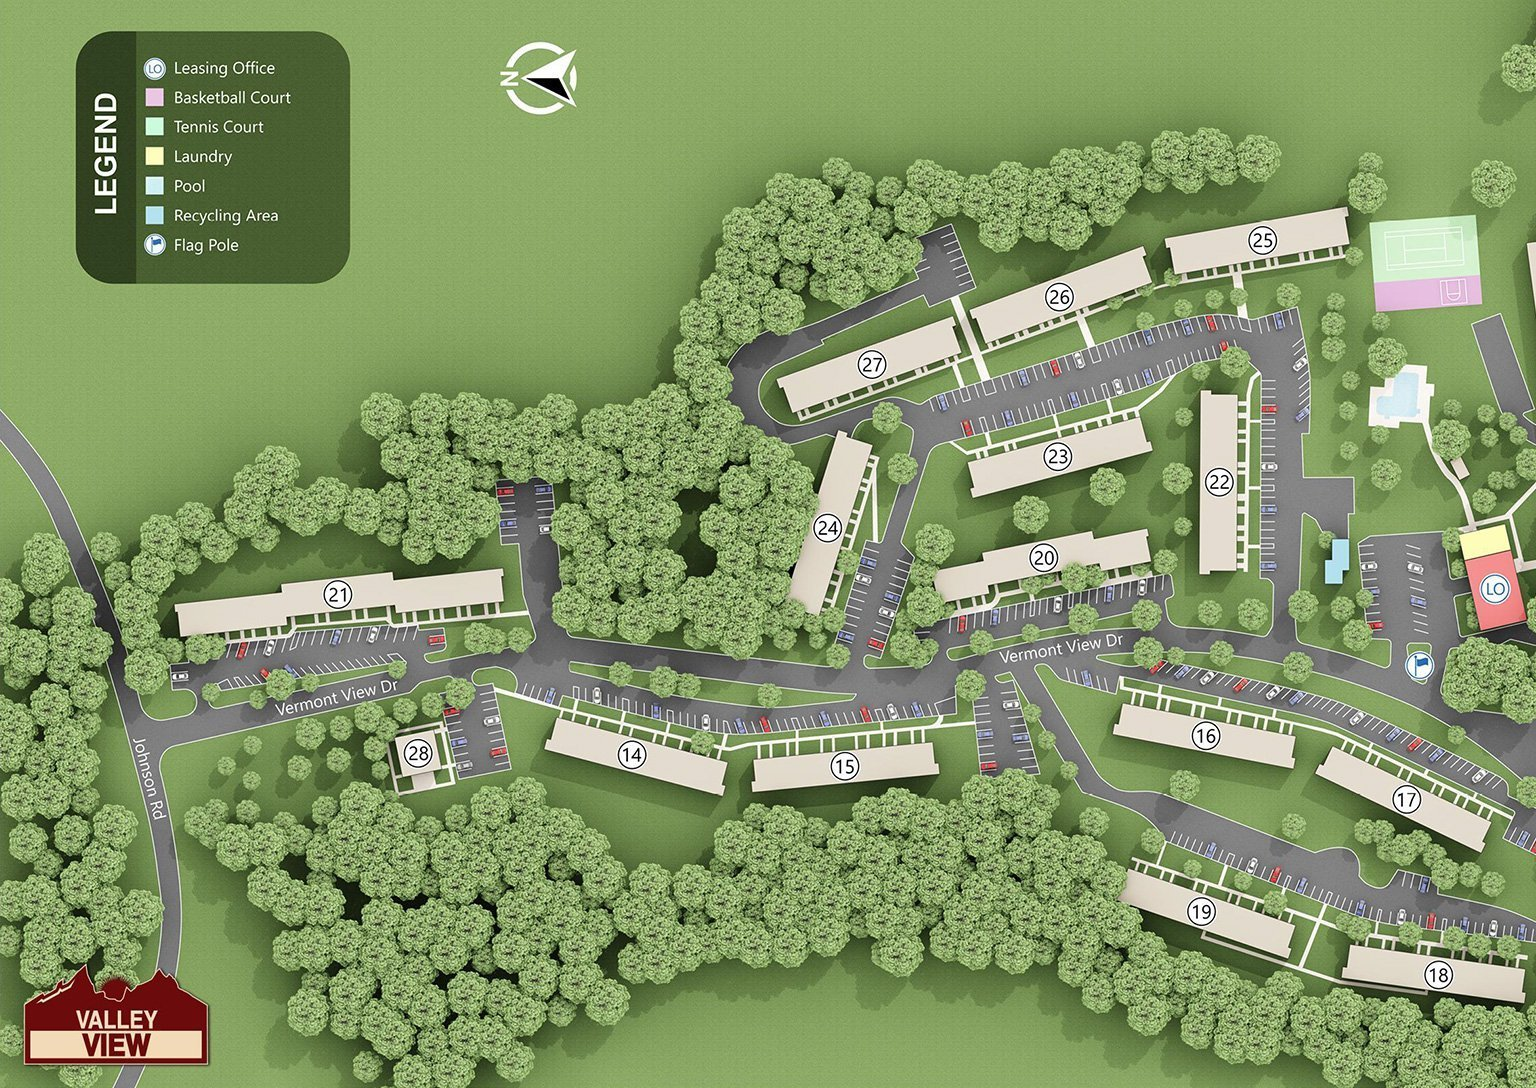 Valley View Apartments - Site Map